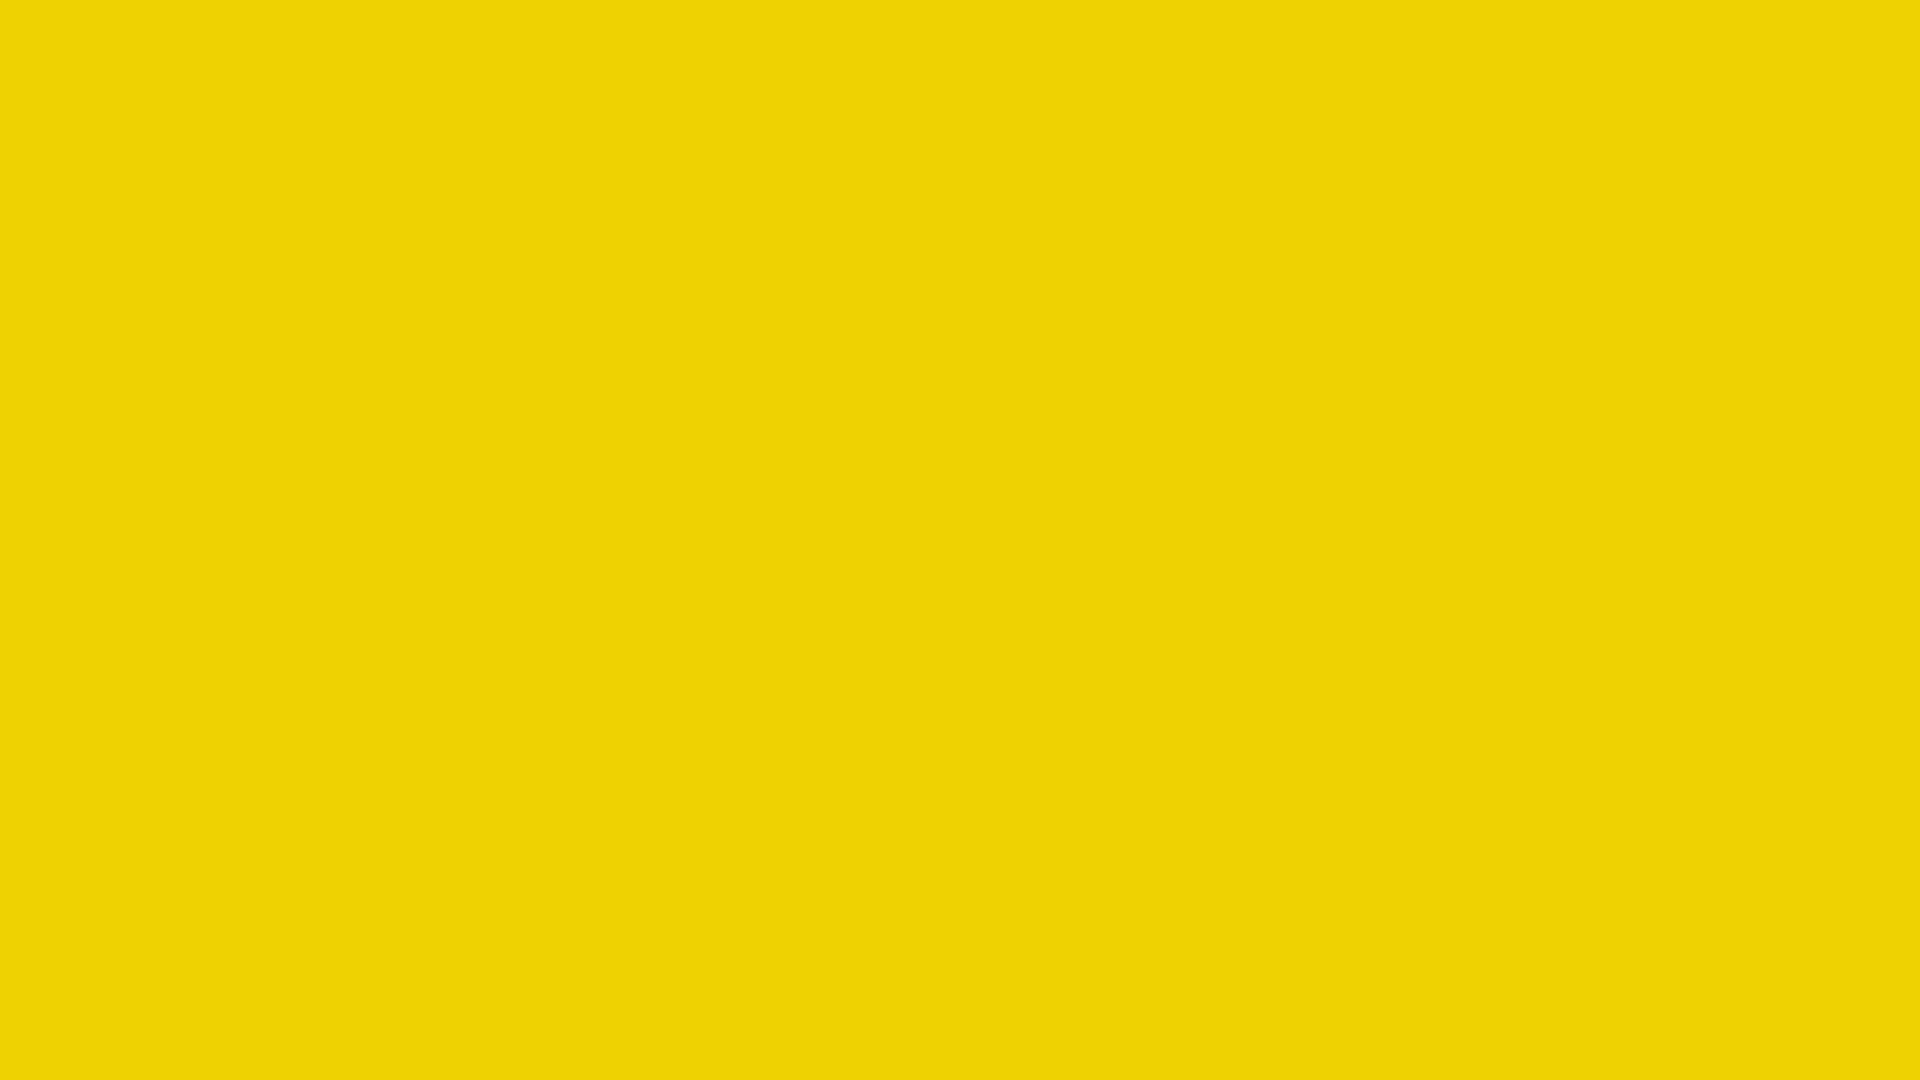 1920x1080 Safety Yellow Solid Color Background